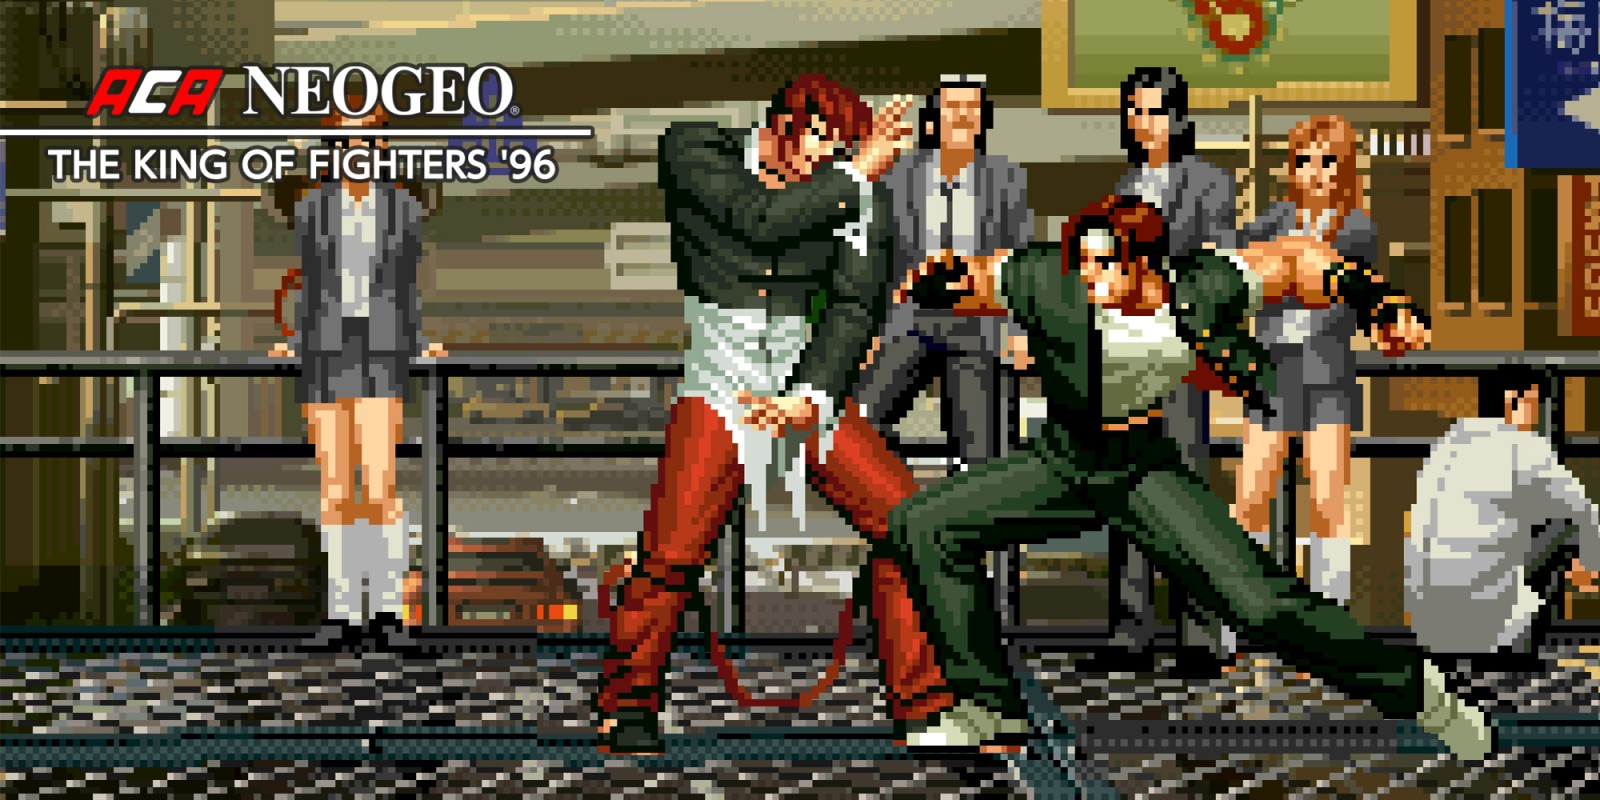 Aca Neogeo The King Of Fighters 96 Nintendo Switch Download